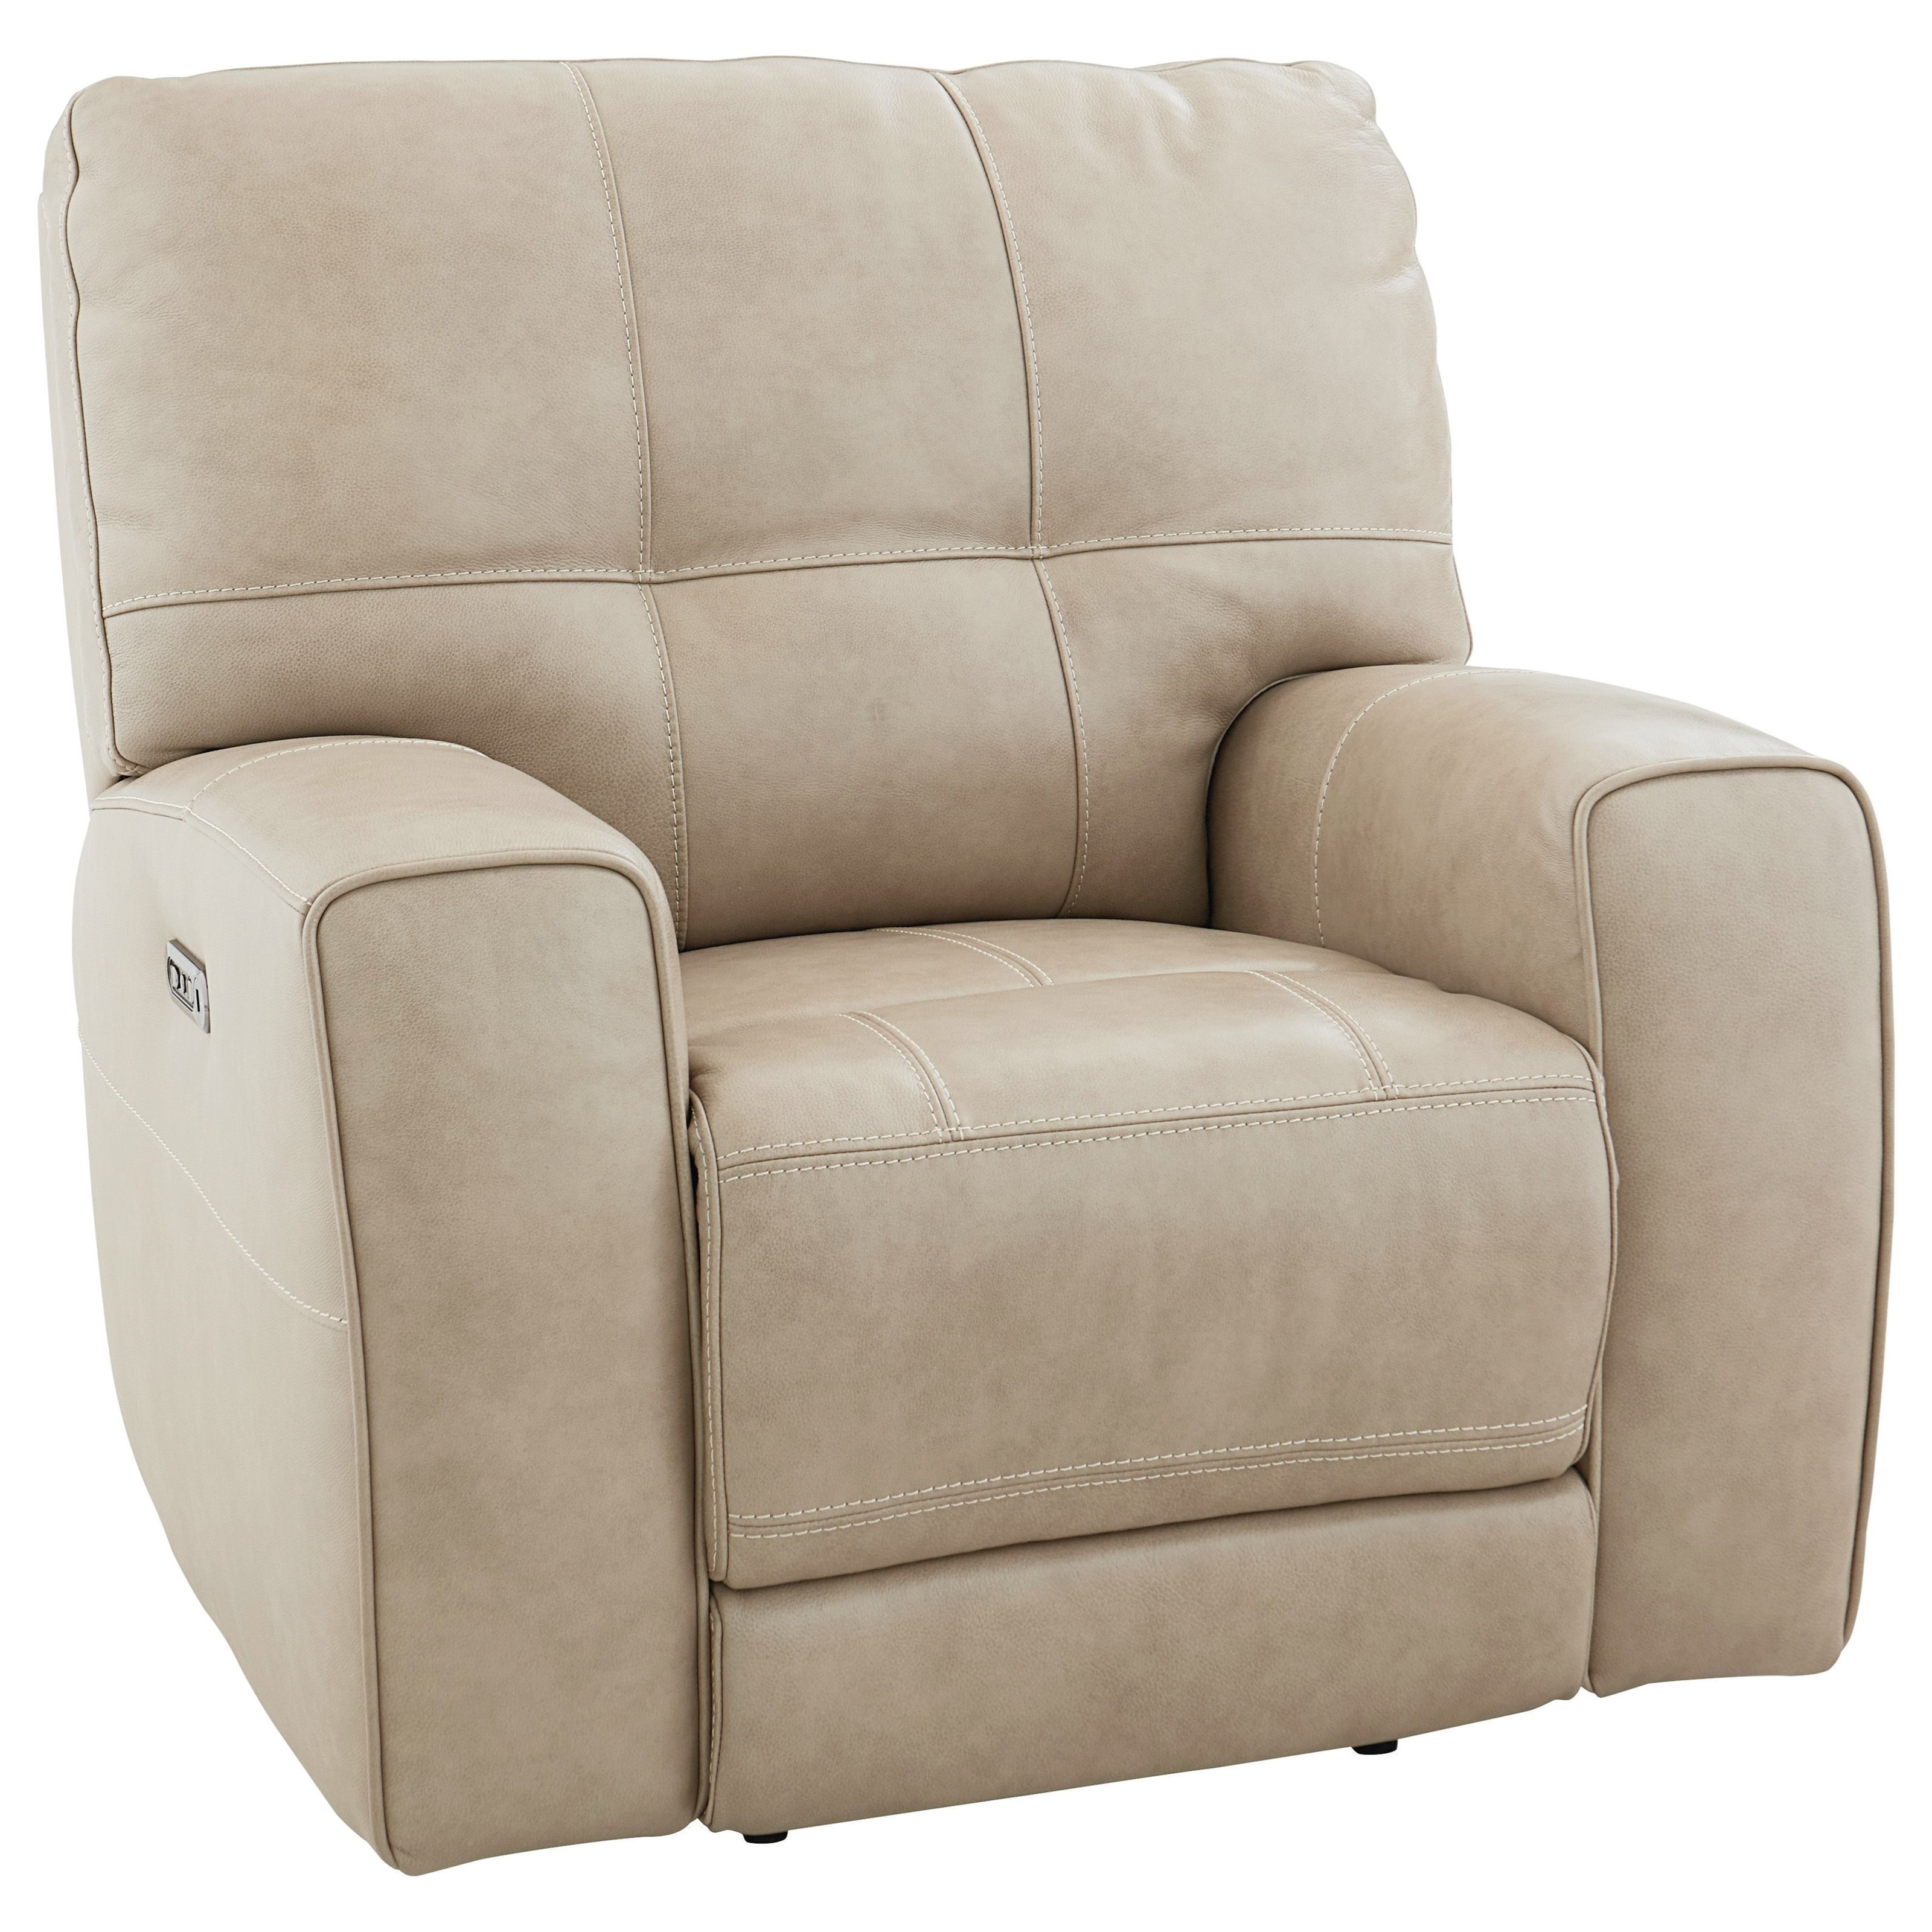 Power Wallsaver Recliner